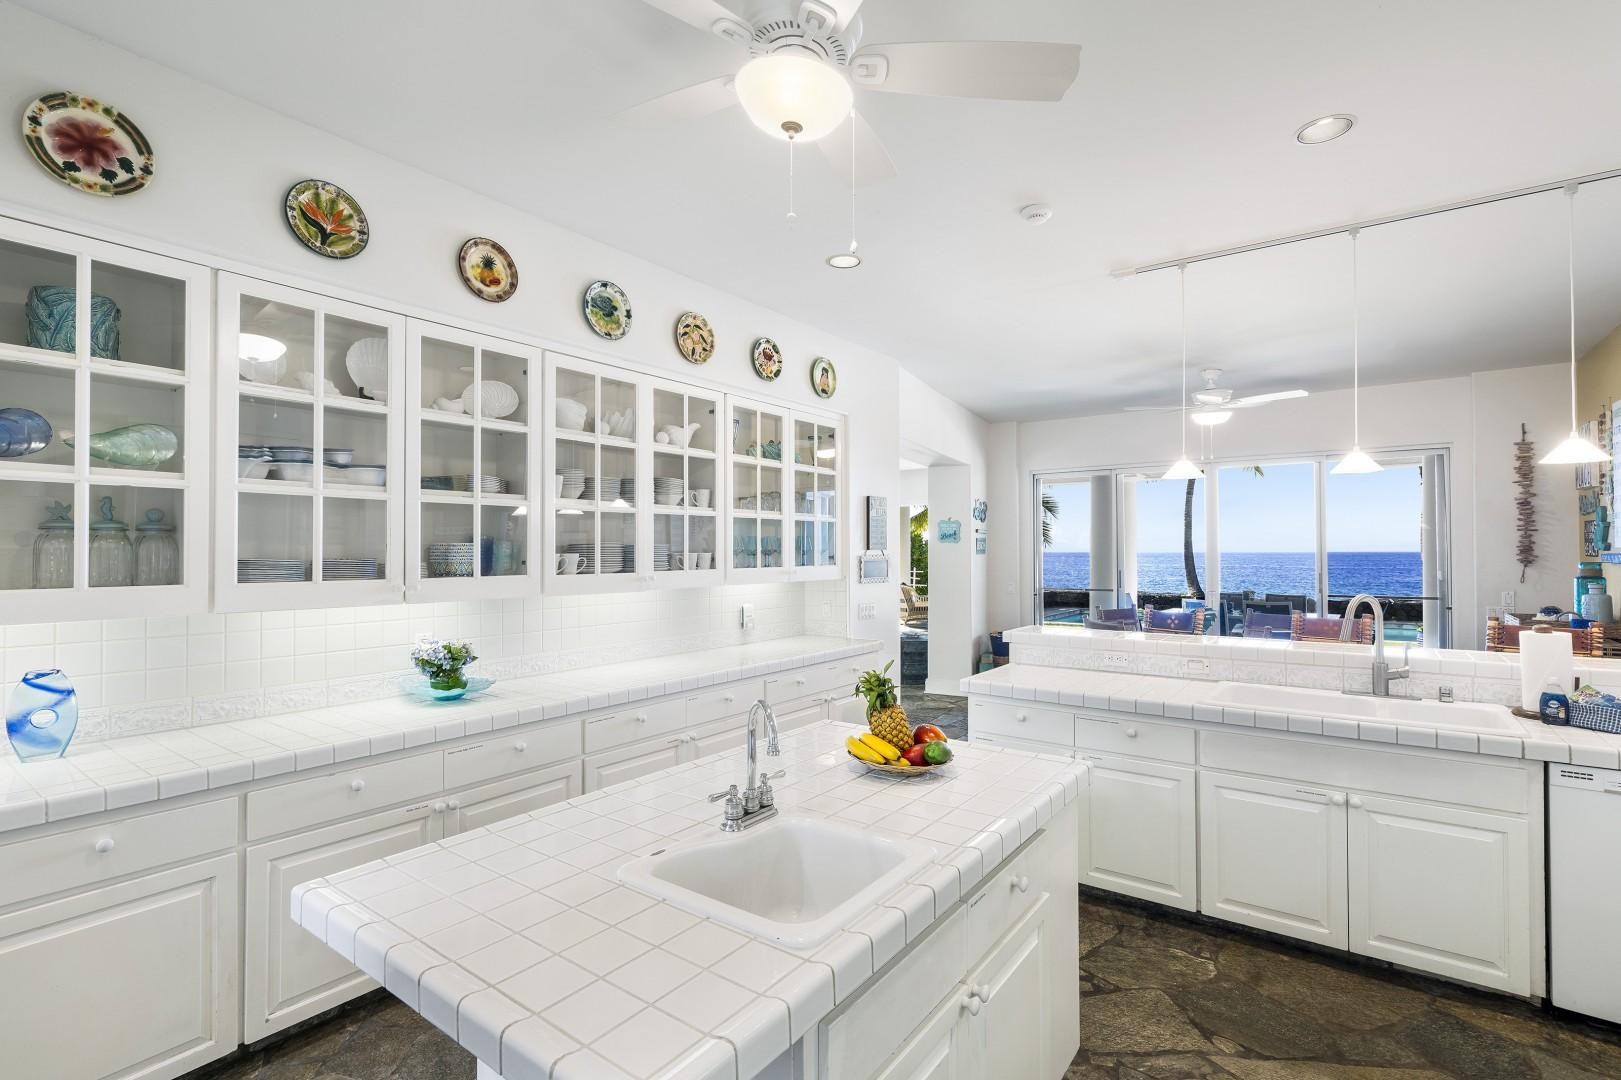 Dual sinks both with an Ocean view!